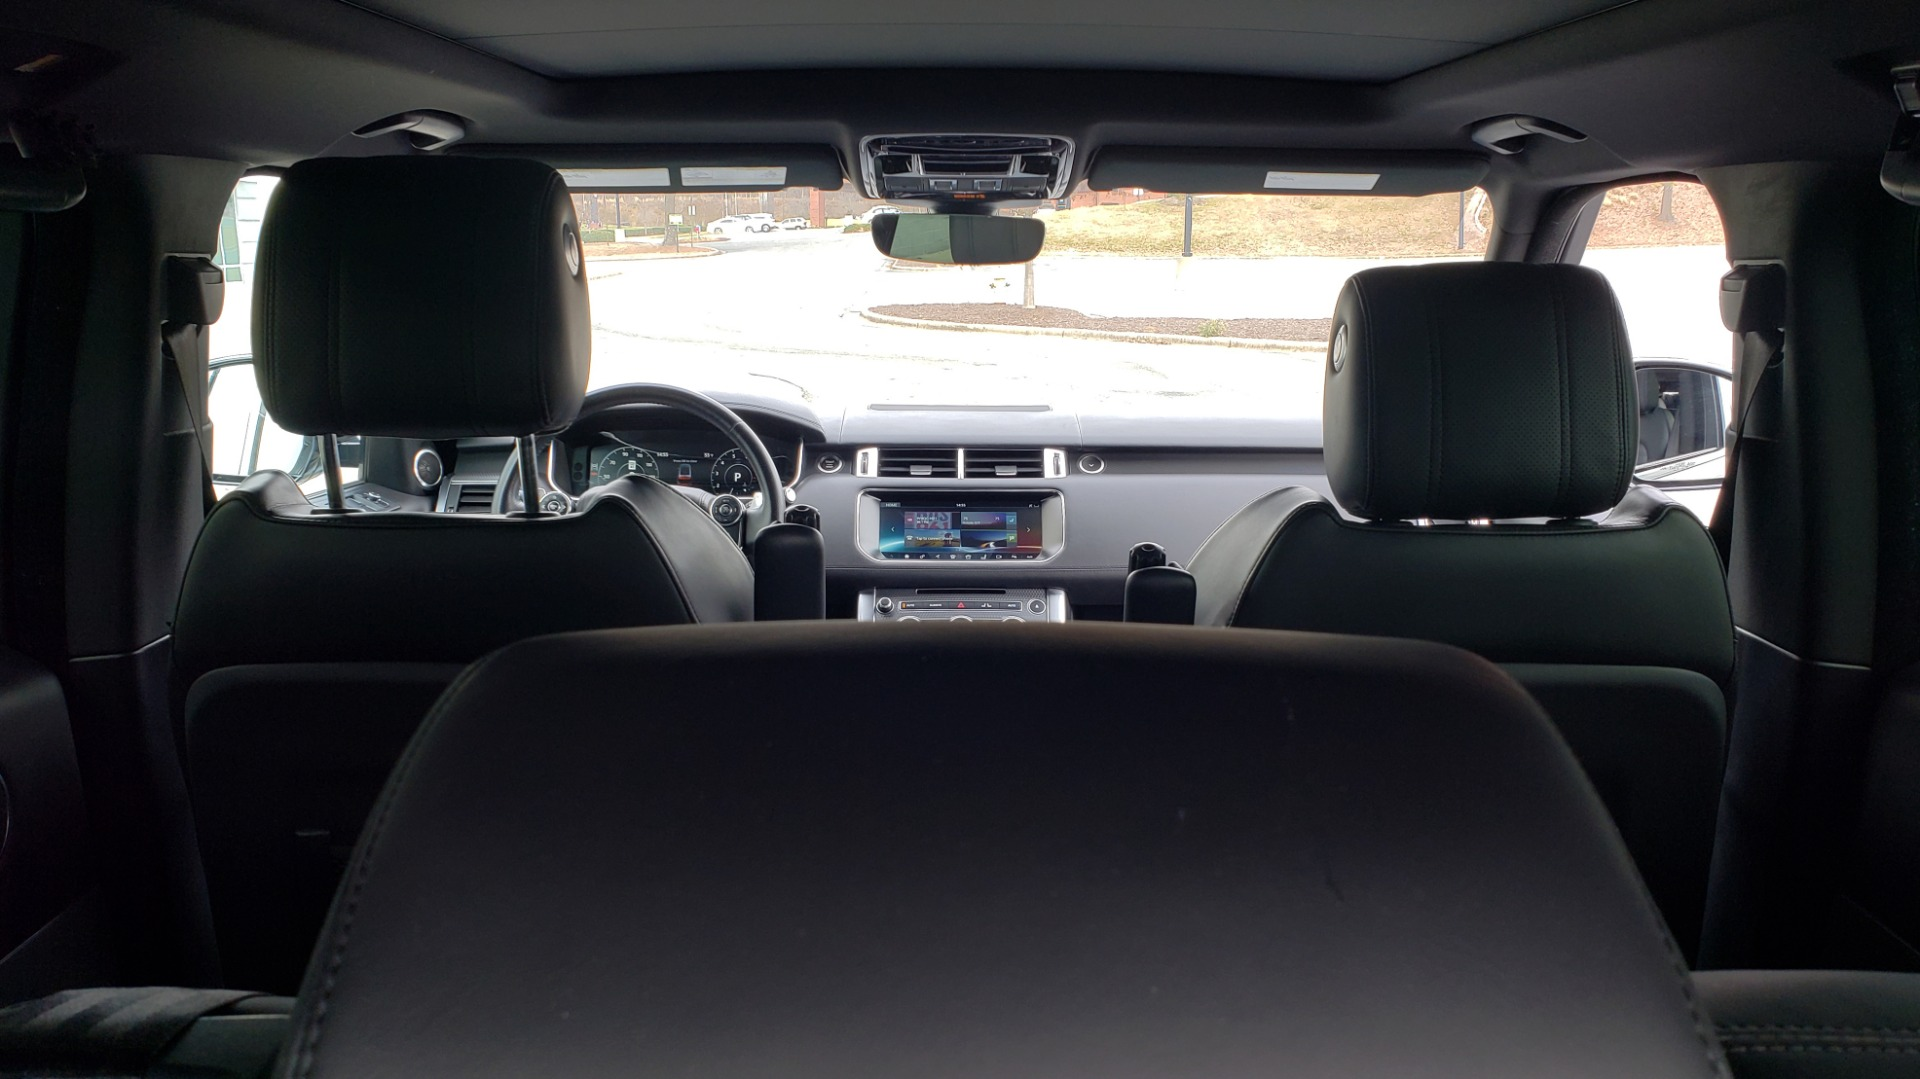 Used 2017 Land Rover RANGE ROVER SPORT HSE DYNAMIC / SC V6 / NAV / MERIDIAN / PANO-ROOF / REARVIEW for sale Sold at Formula Imports in Charlotte NC 28227 121